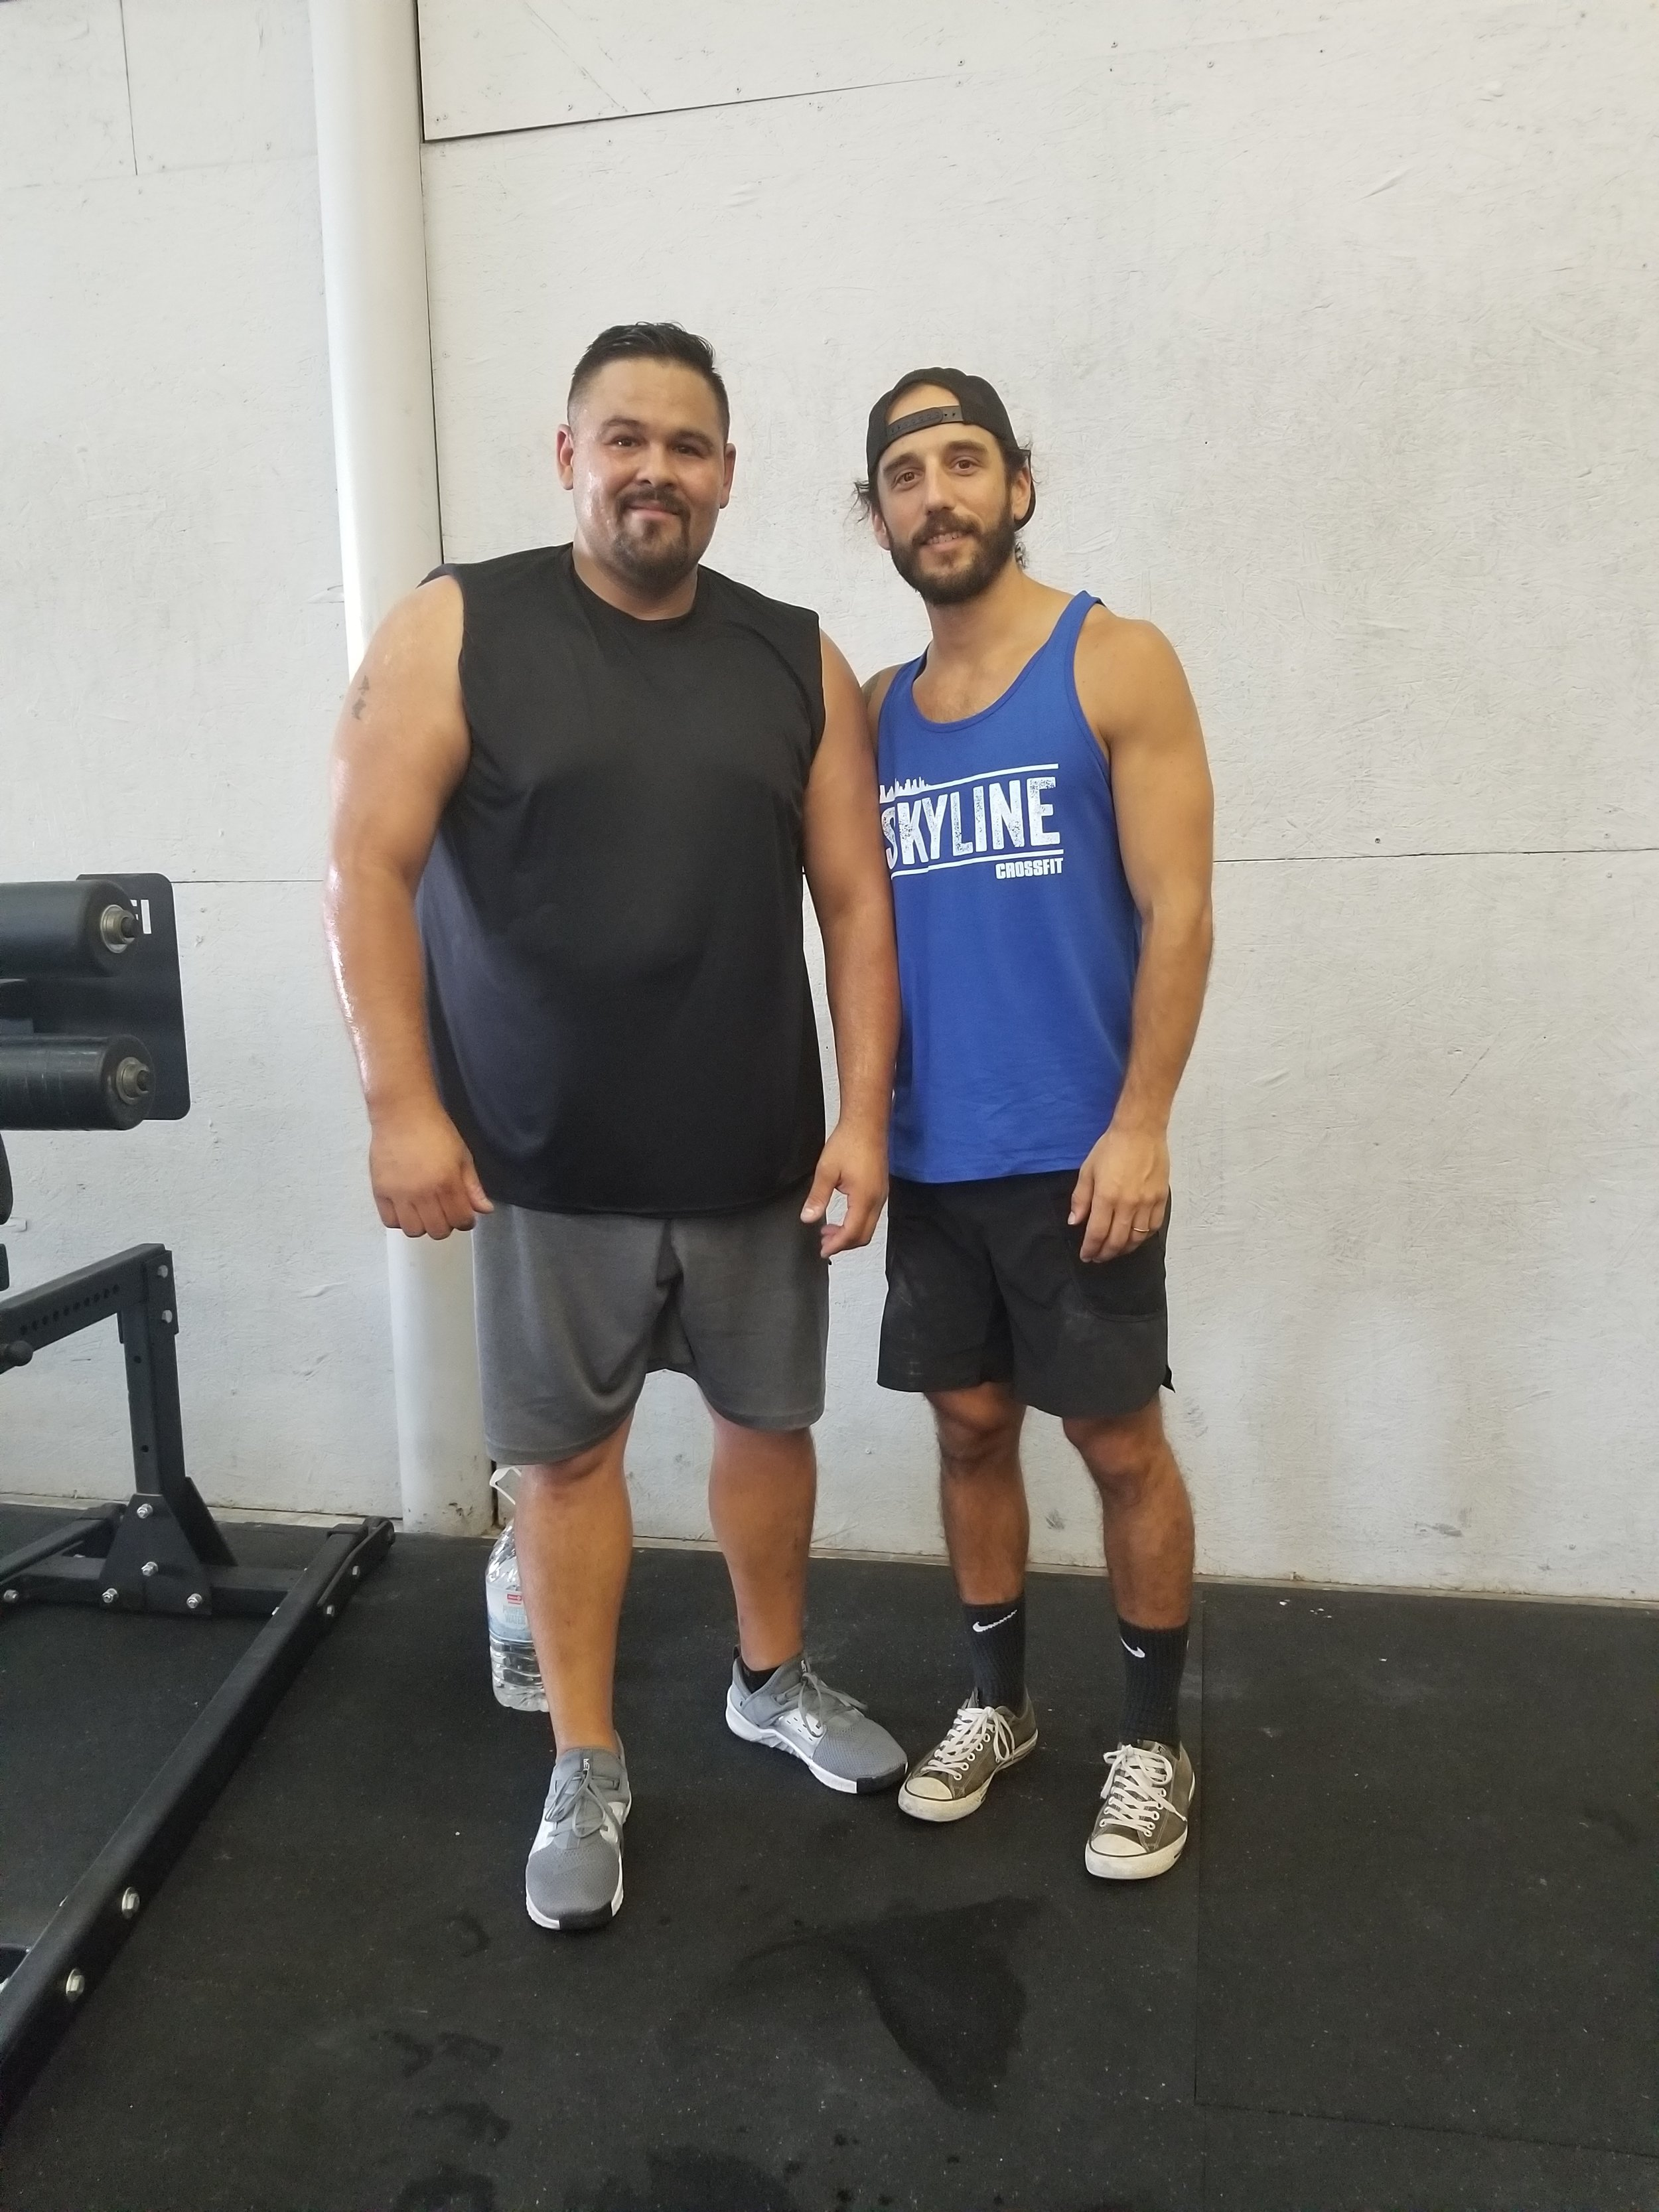 Welcome Abe Tovar to Skyline CrossFit. He just graduated his foundations. Abe was referred here by his friend Aldo and you can see both of them at the 4pm evening classes!